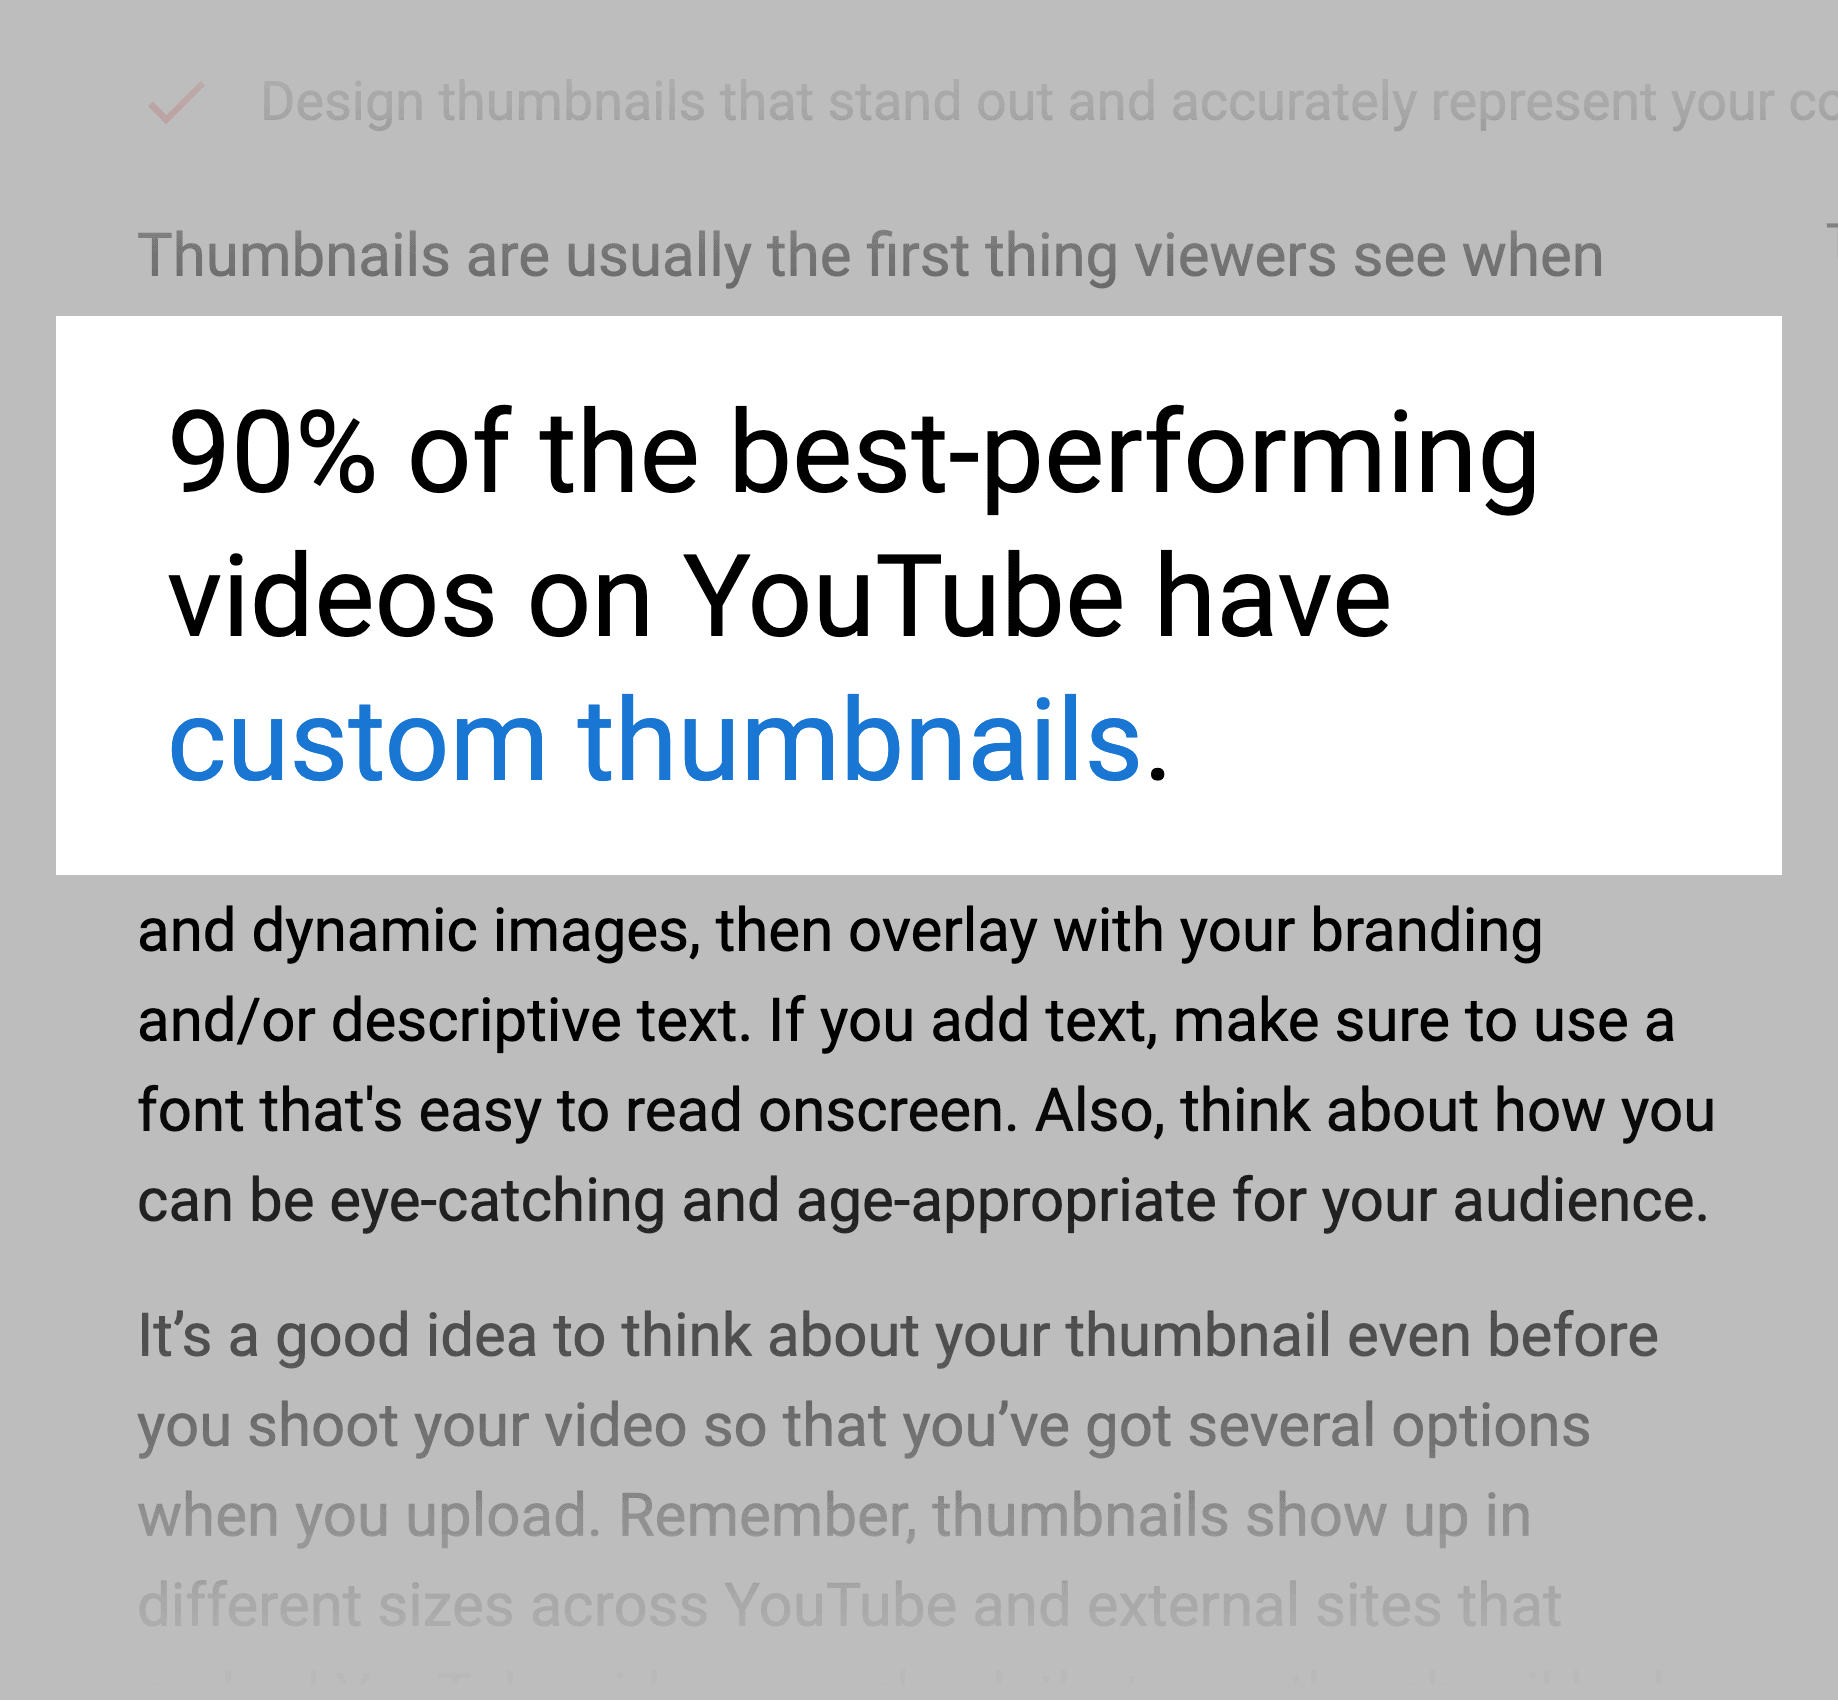 YouTube reports – 90 percent of best performing videos have custom thumbnails